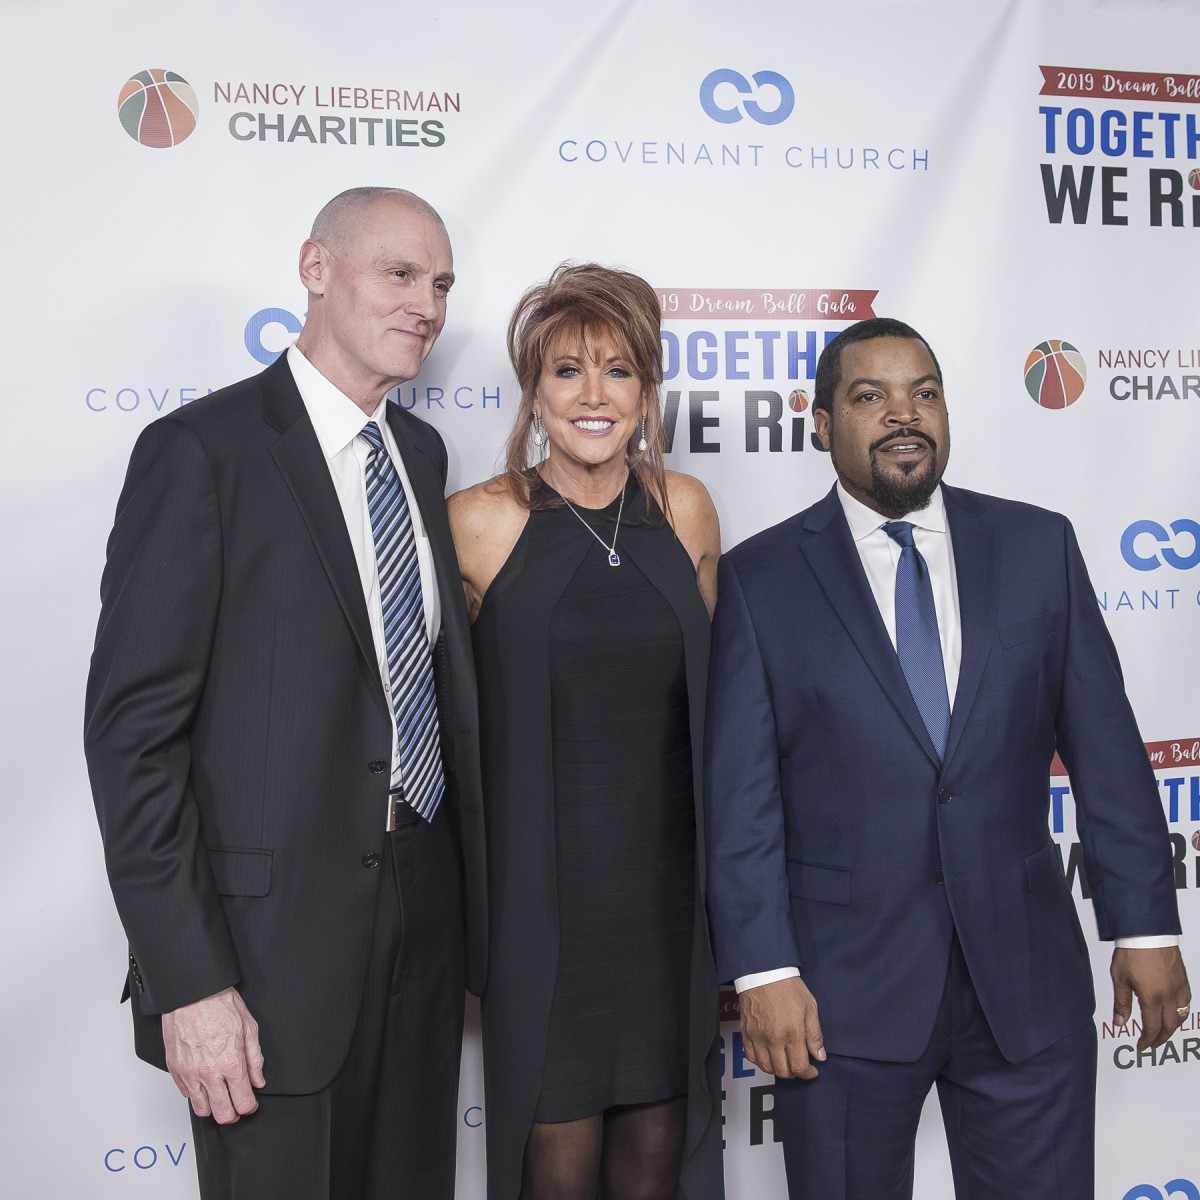 Nancy Lieberman Charities Dream Ball Gala